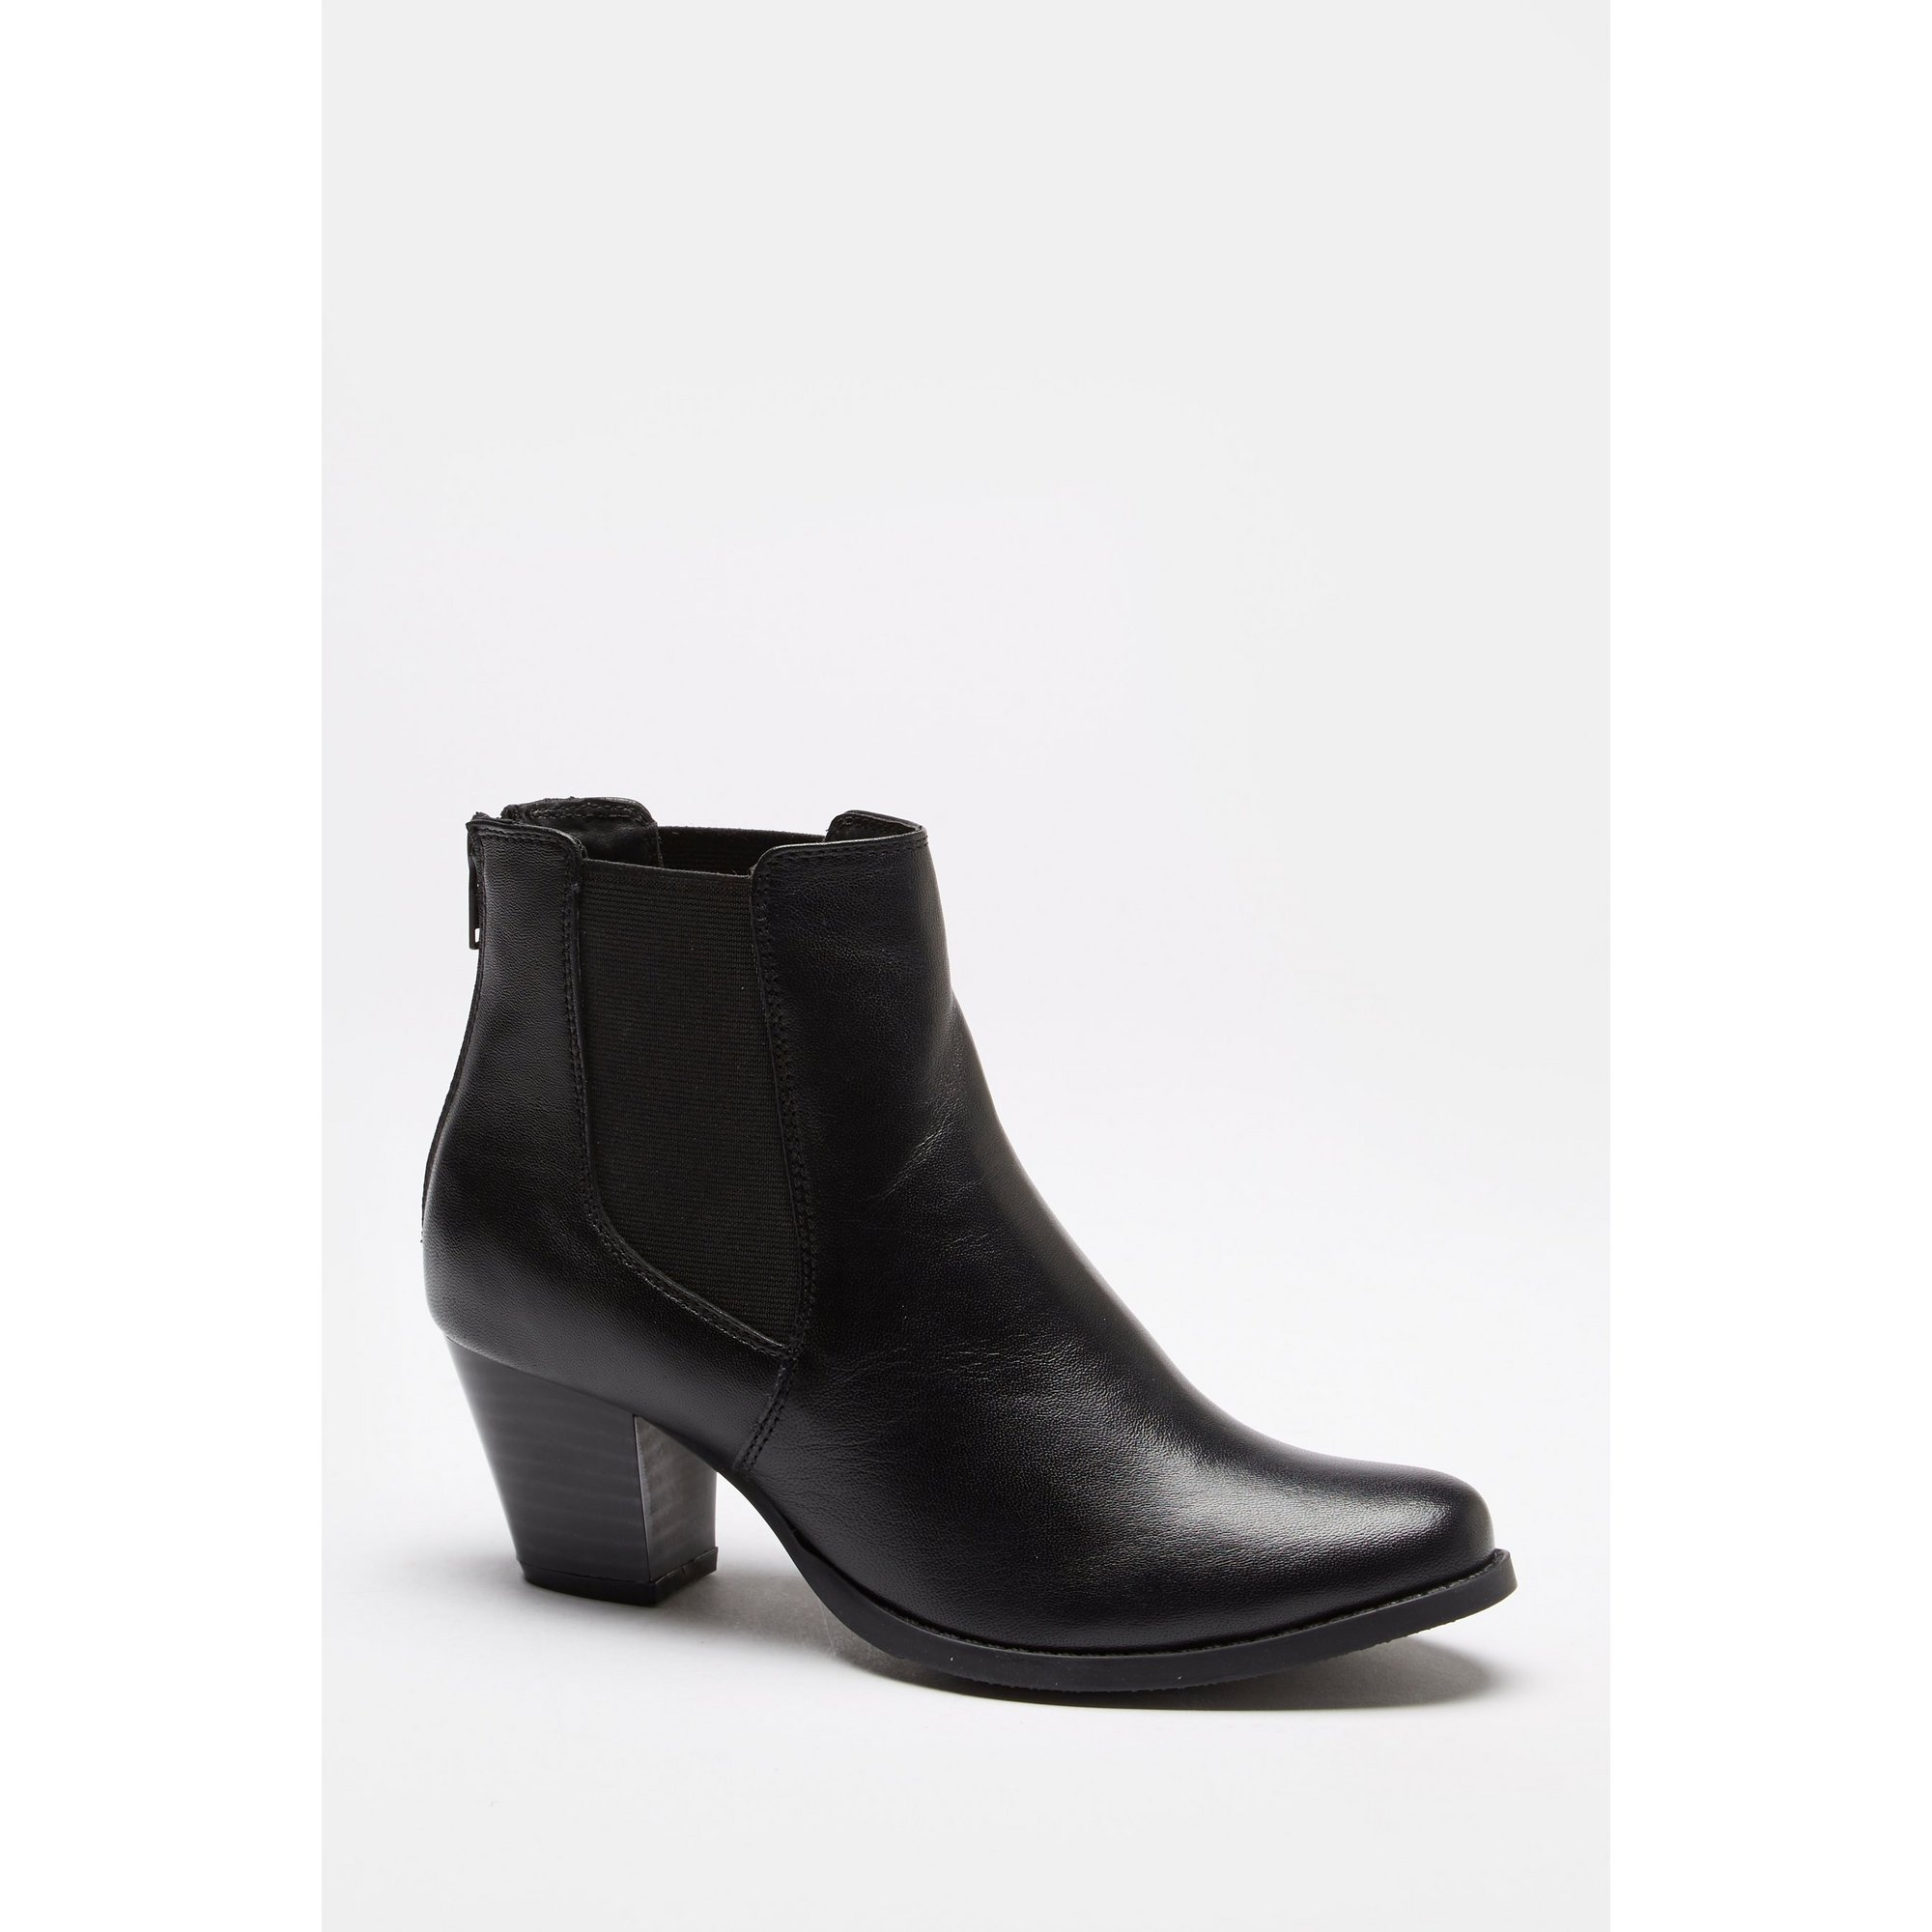 Image of Comfort Plus Twin Gusset Black Ankle Boots